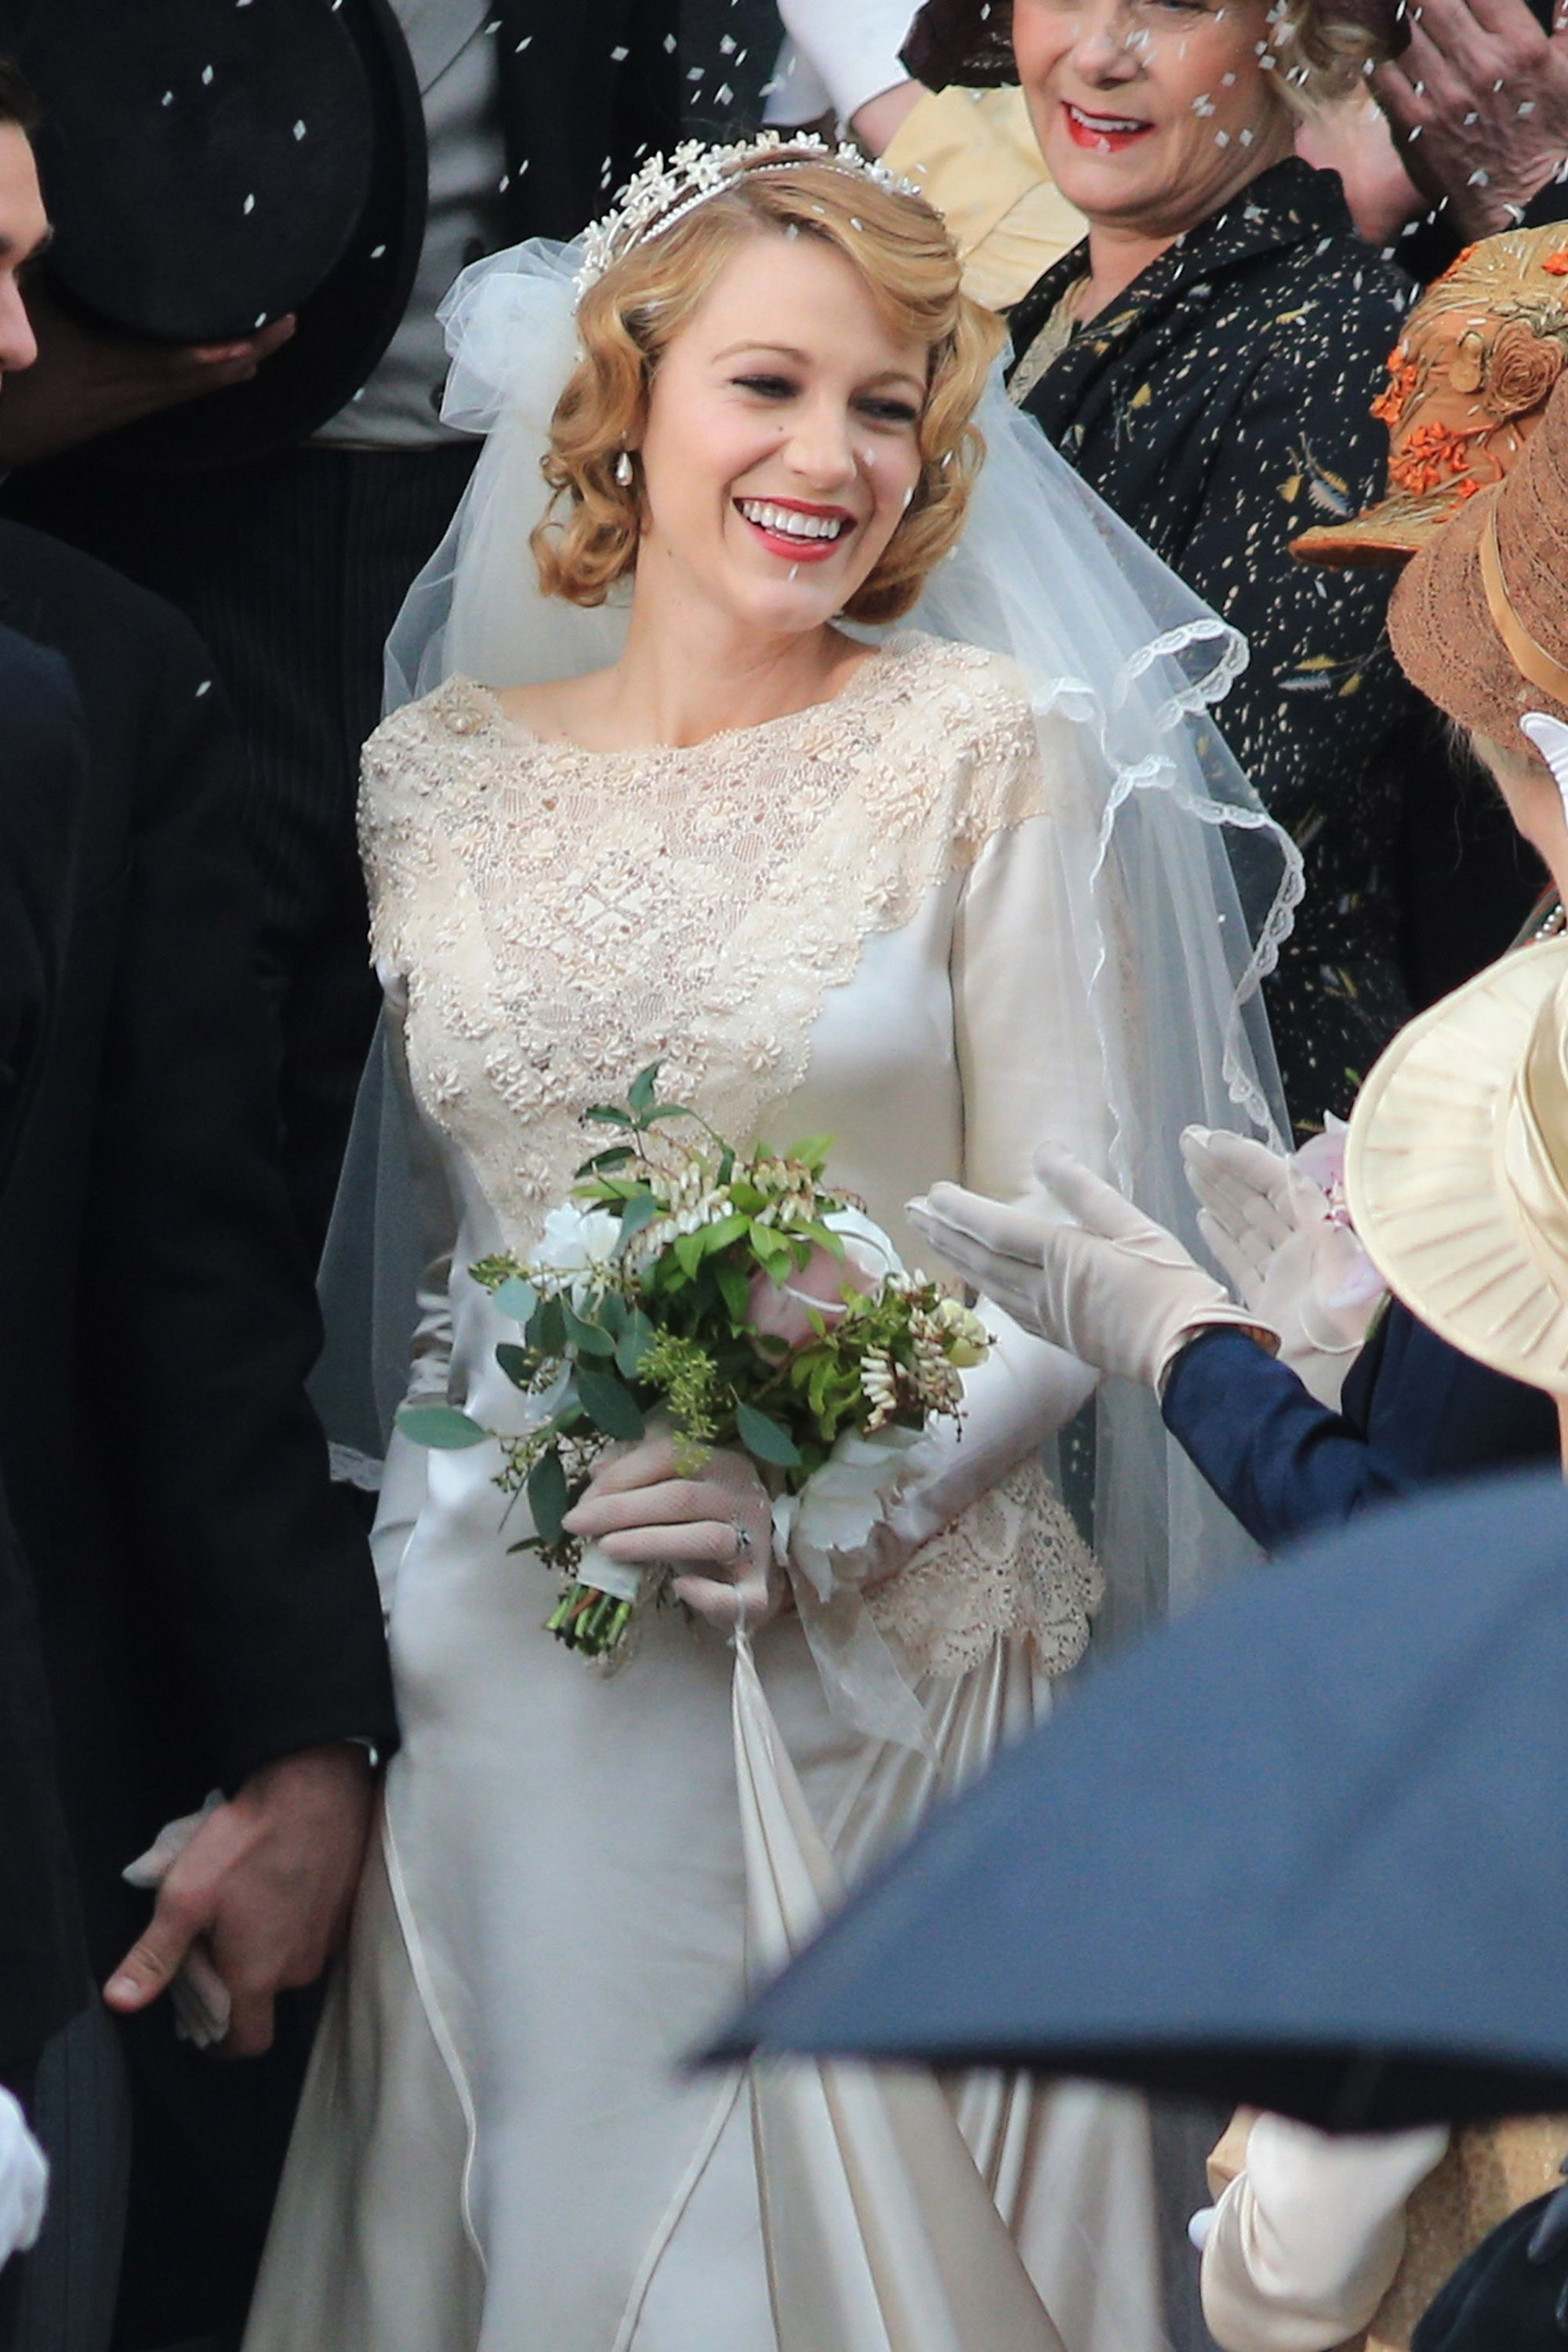 In Photos: 32 Iconic Movie Wedding Gowns | Movie and TV Brides ...